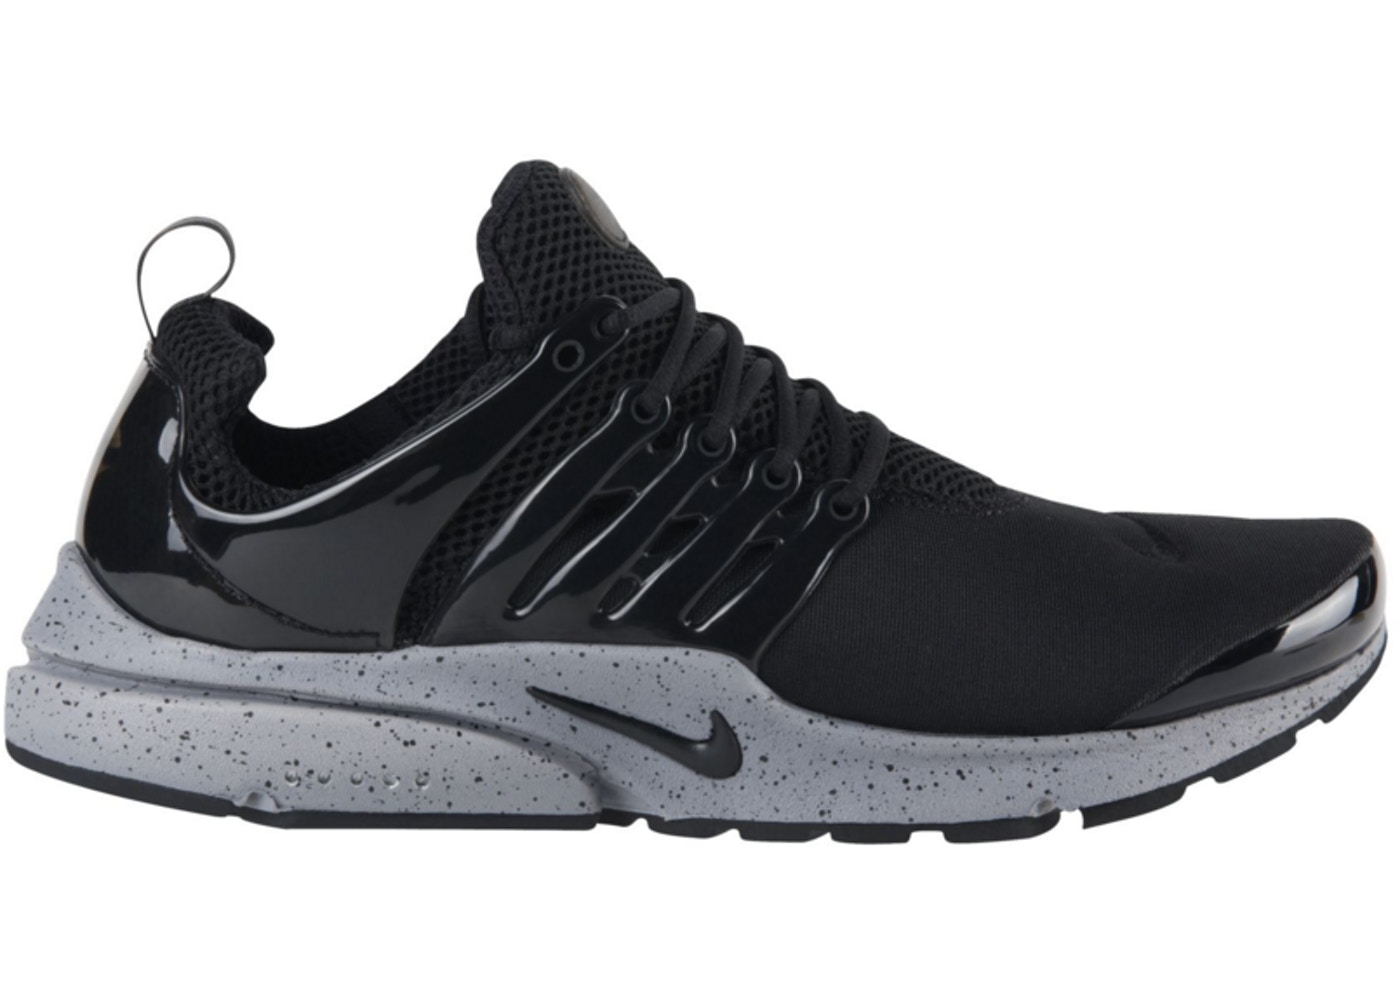 648d2530bf34 Air Presto Genealogy Black - 689800-001